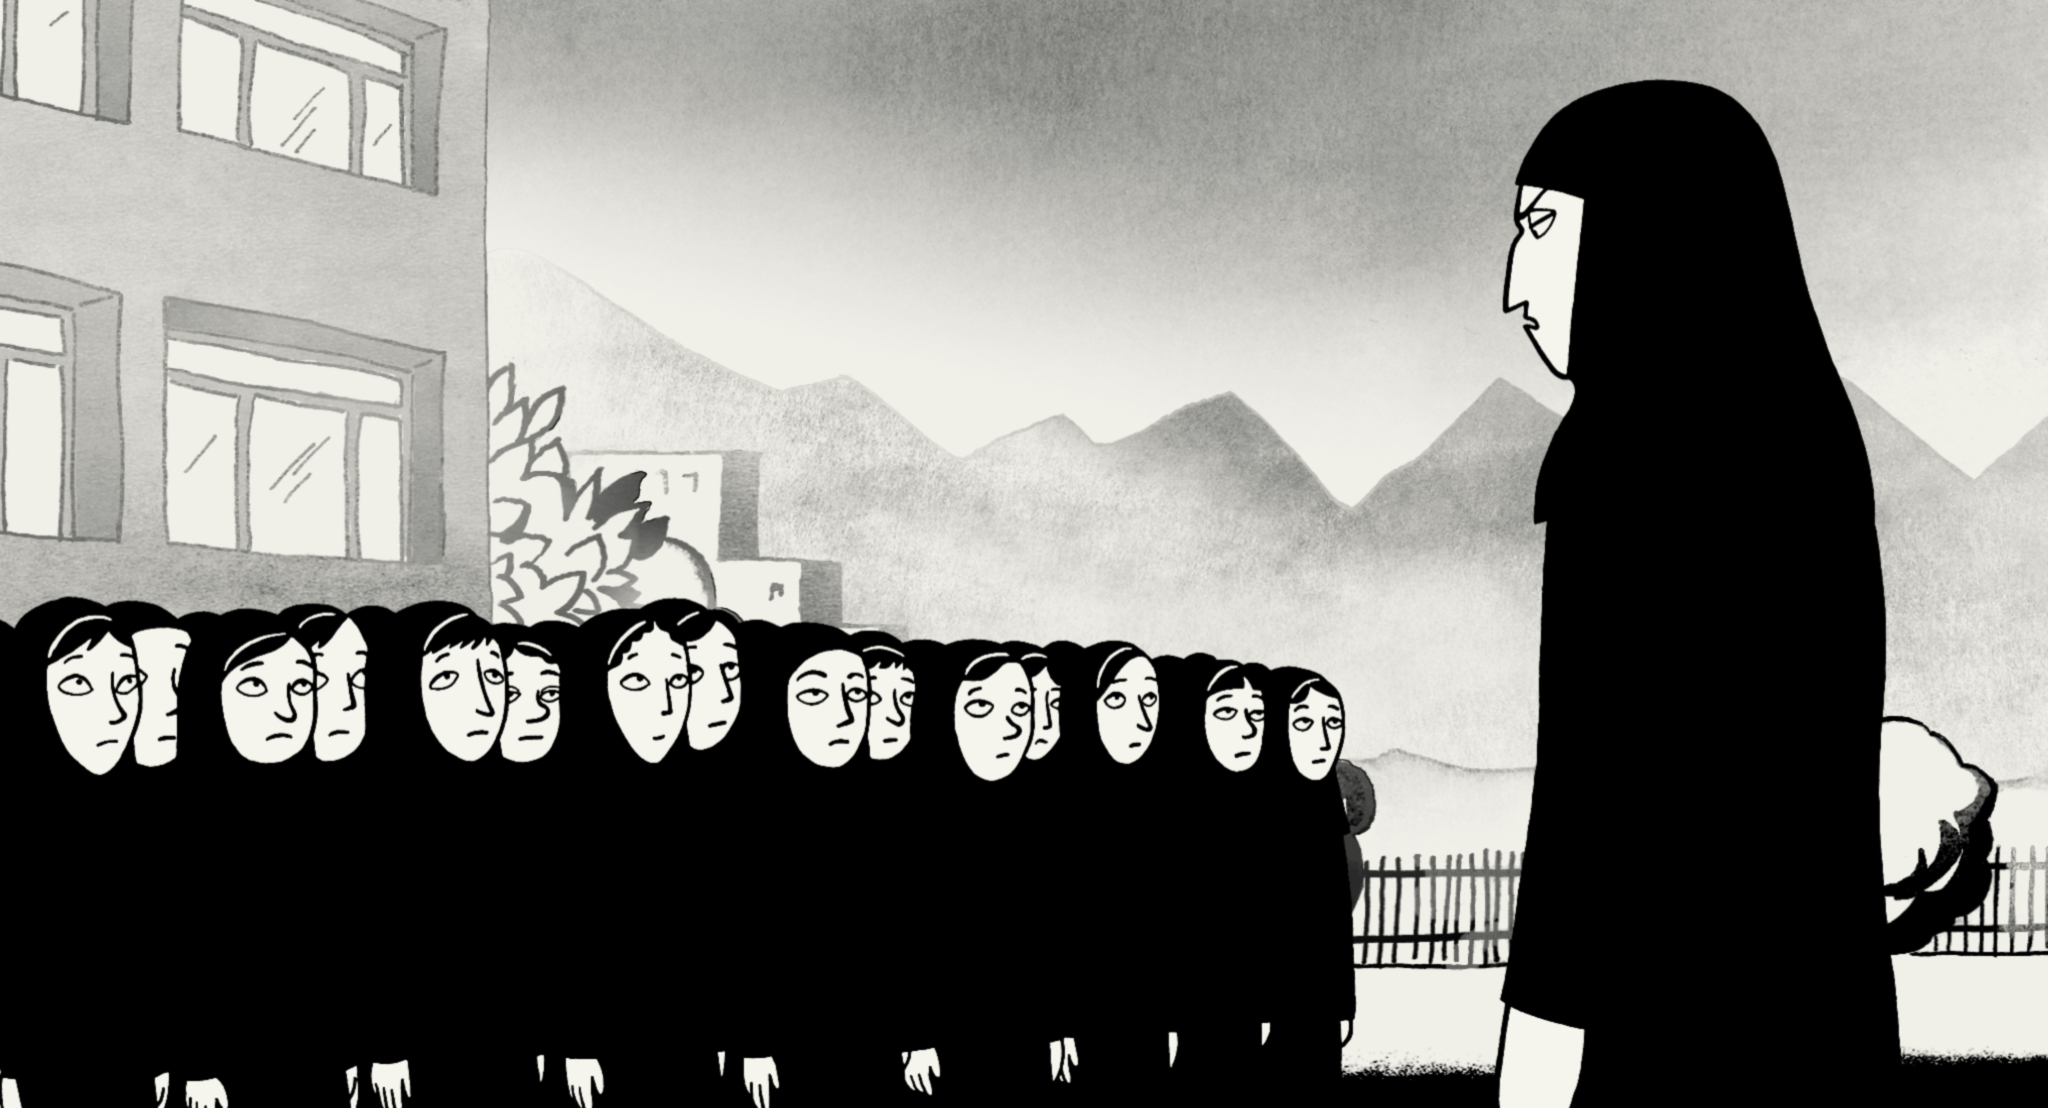 persepolis perceptions of the veil It's a chance for a western audience to see beyond 'the veil' (as it's often referred to) of iranian culture and see the sorts of real people that live there, as well as a chance to view western culture through the eyes of an outsider.